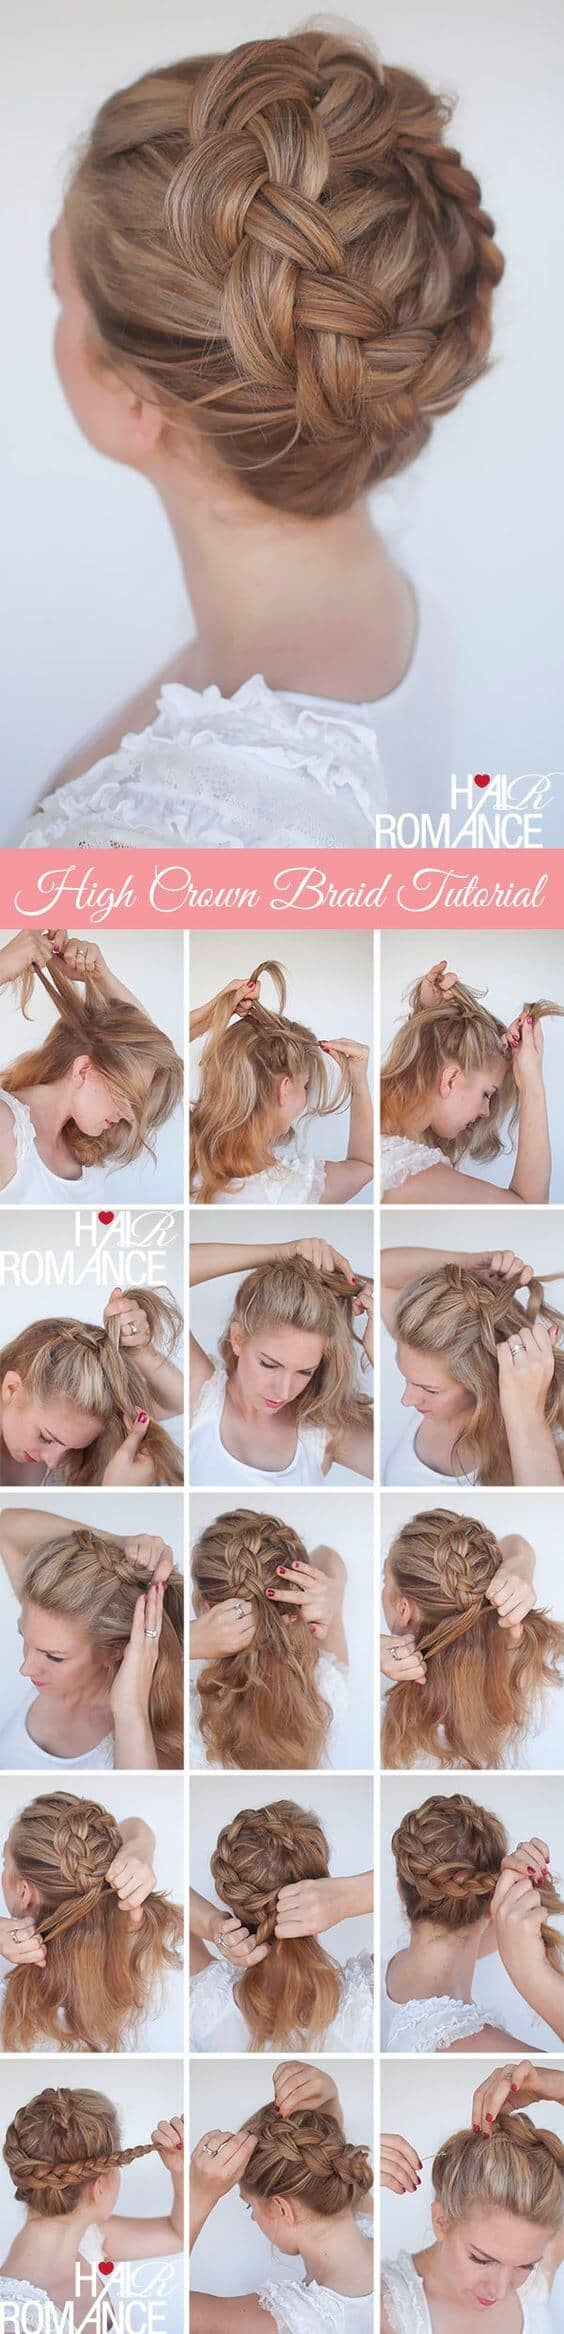 Round Crown Braid